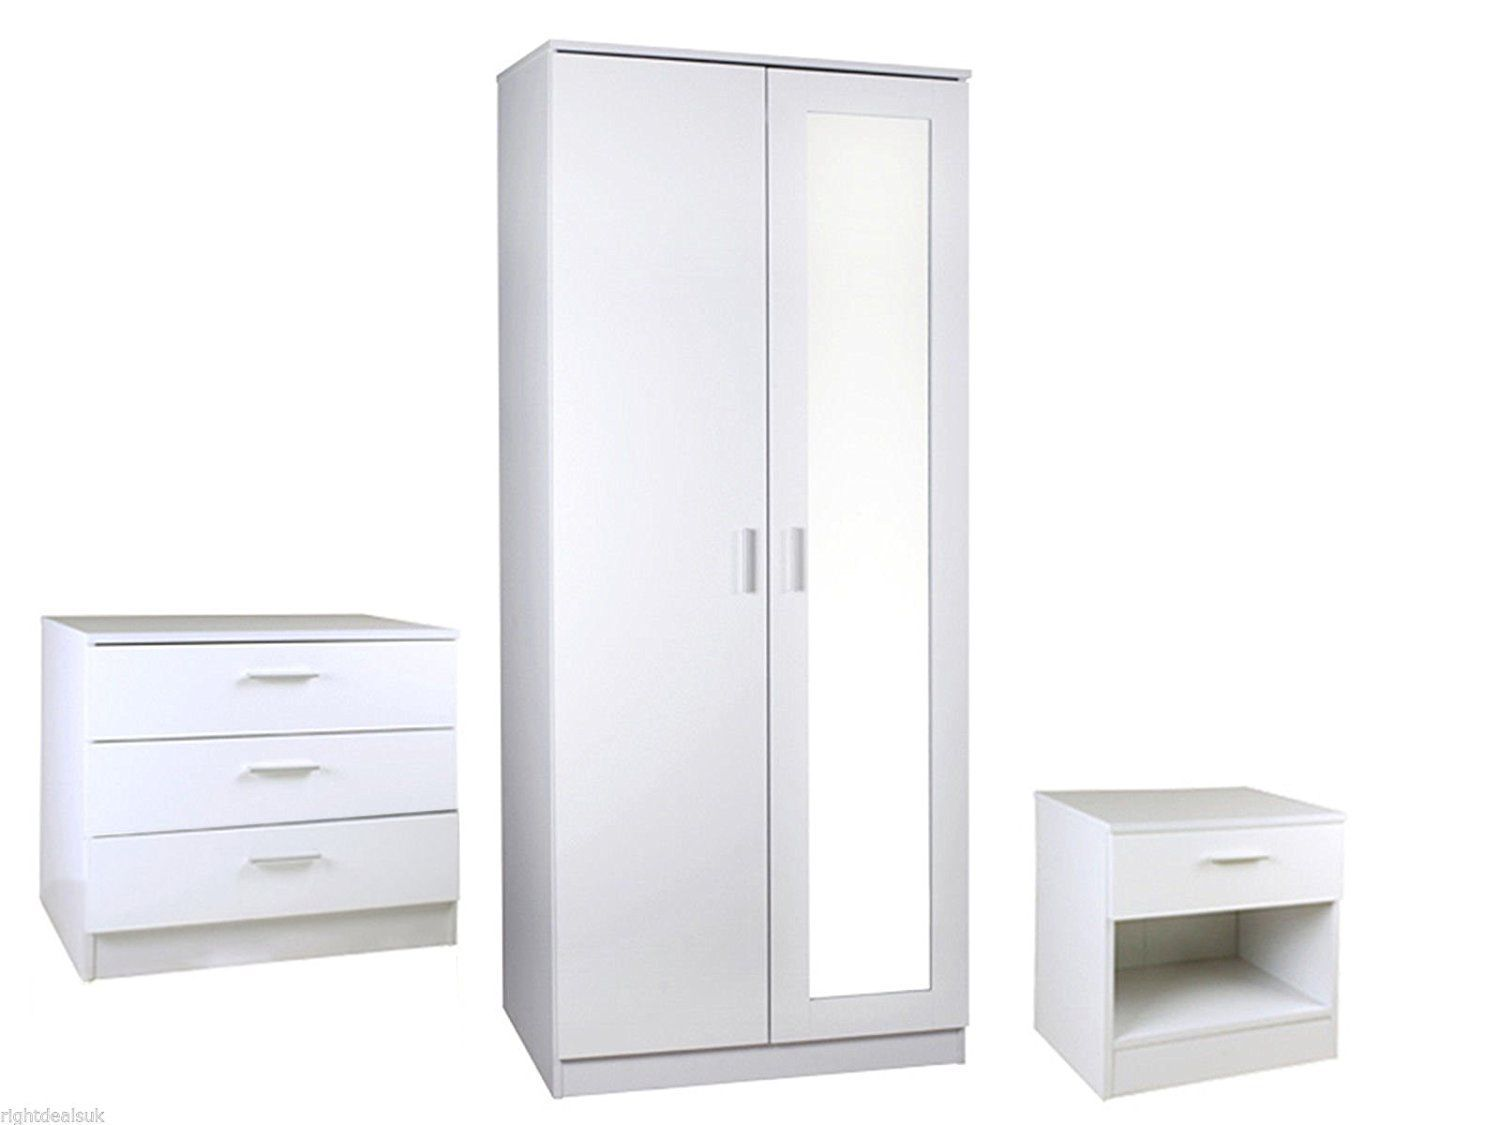 Anspruchsvoll Badmöbel Porta Referenz Von 3 Piece Bedroom Furniture Set - Wardrobe